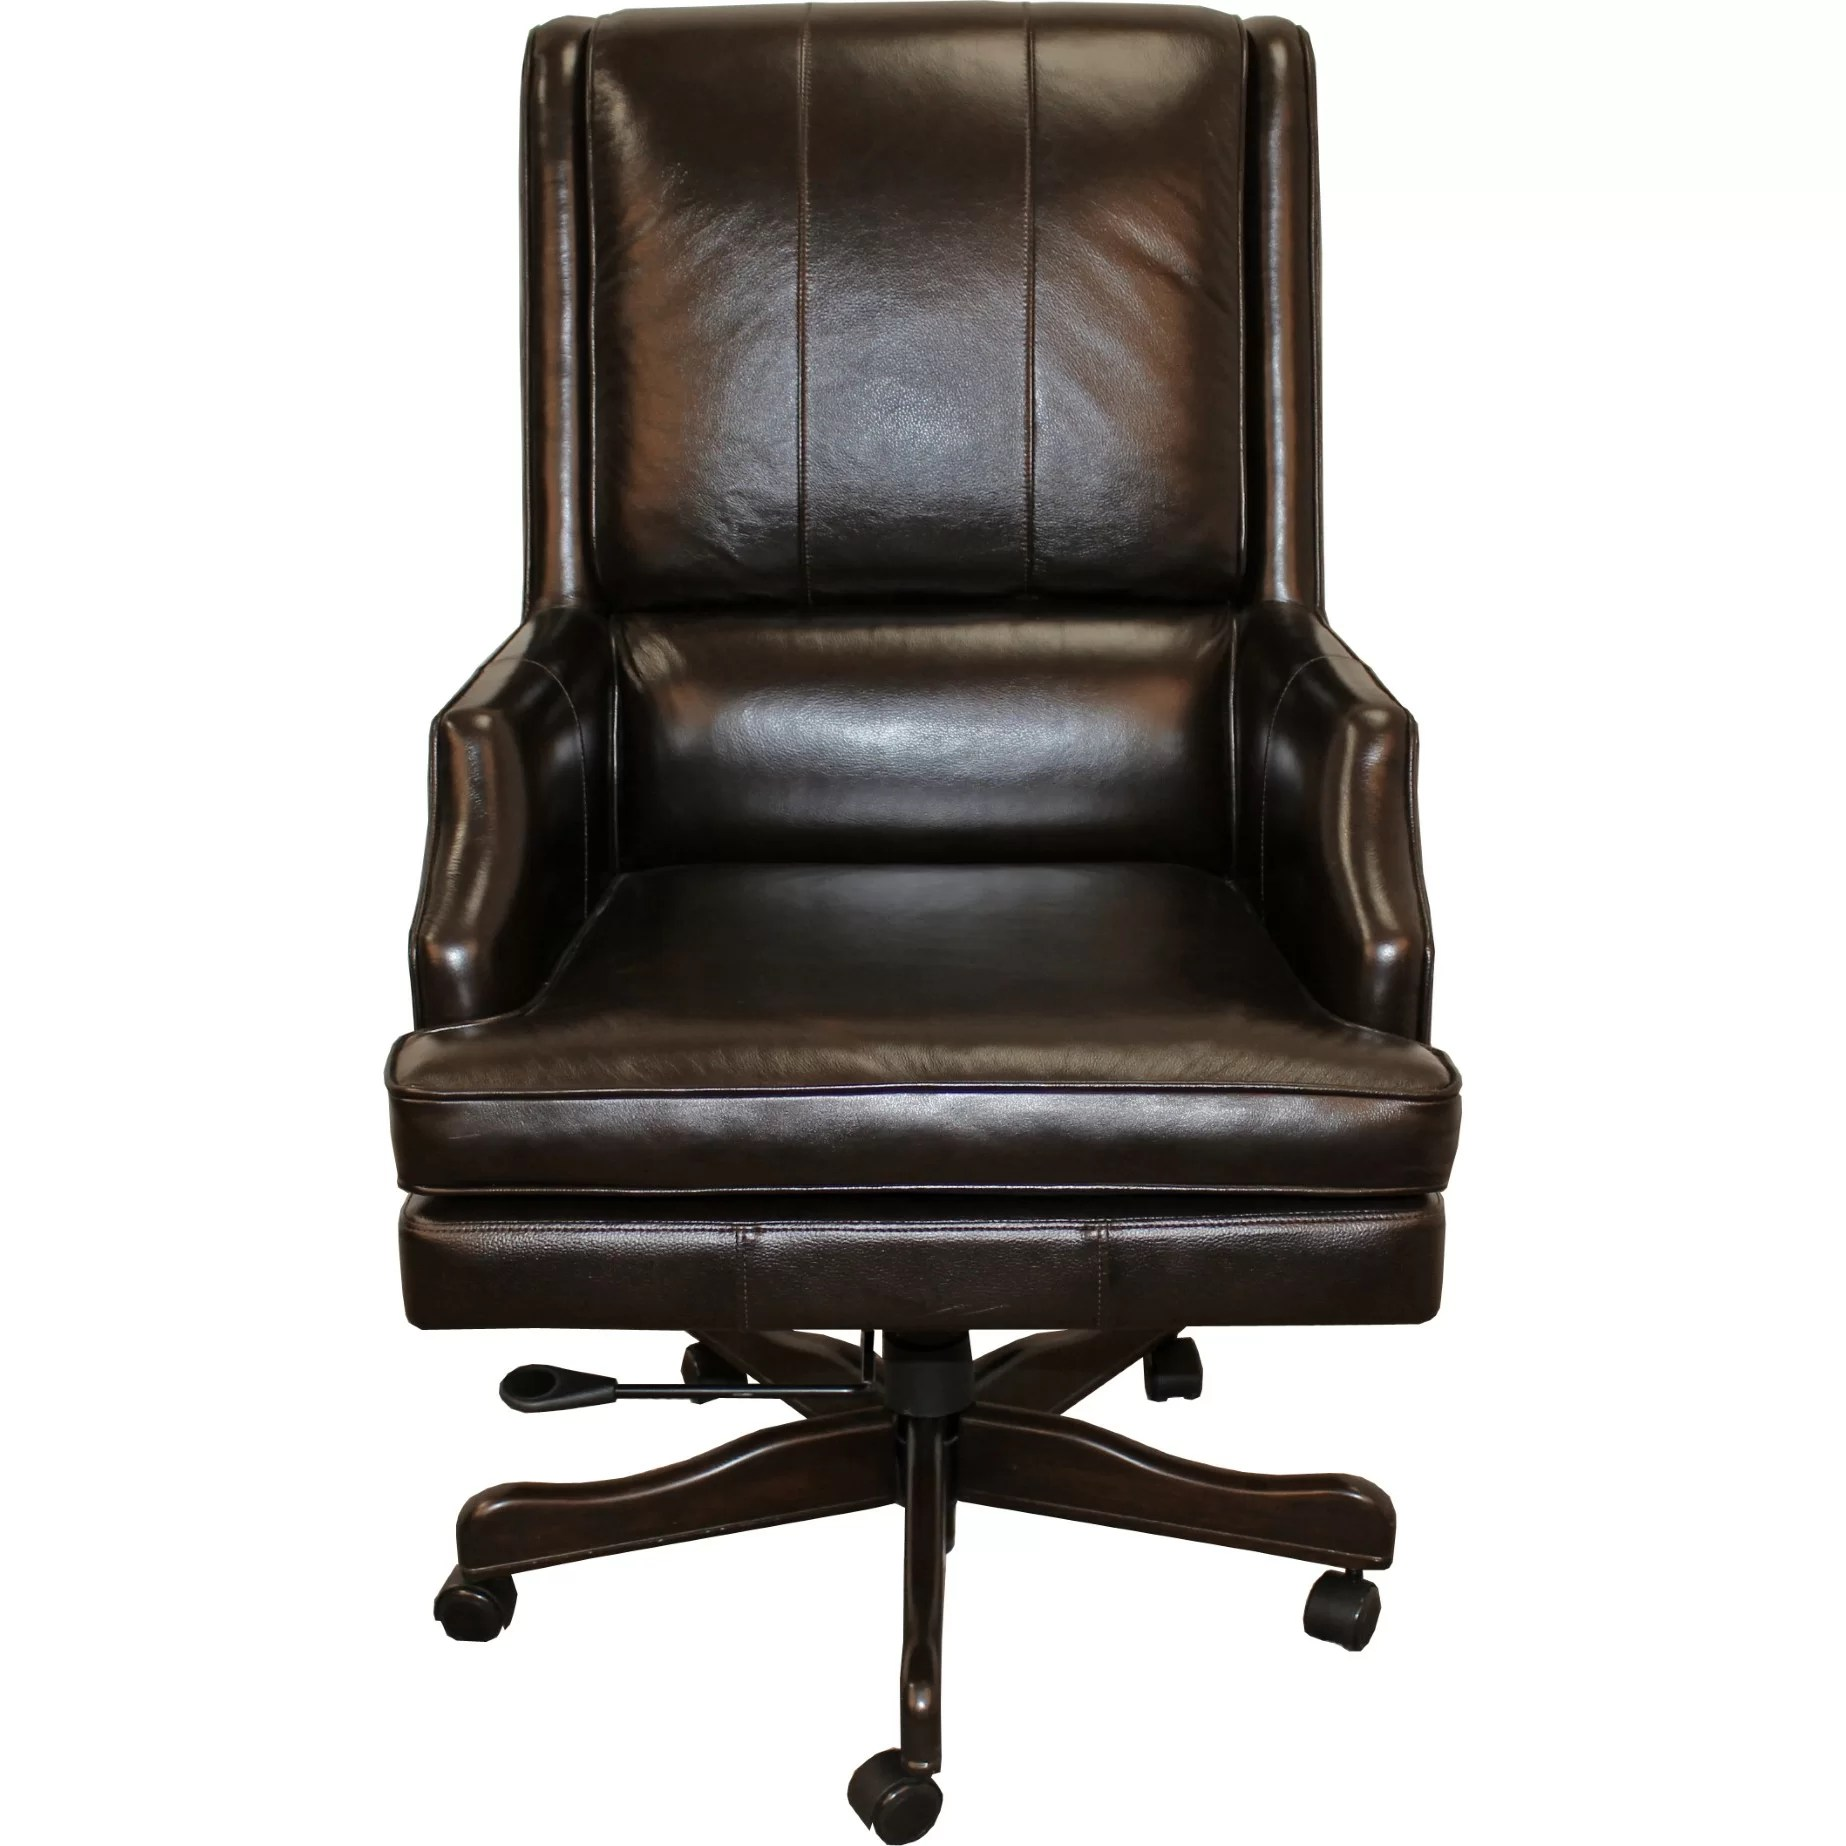 Leather Executive Chair Parker House High Back Leather Executive Chair And Reviews